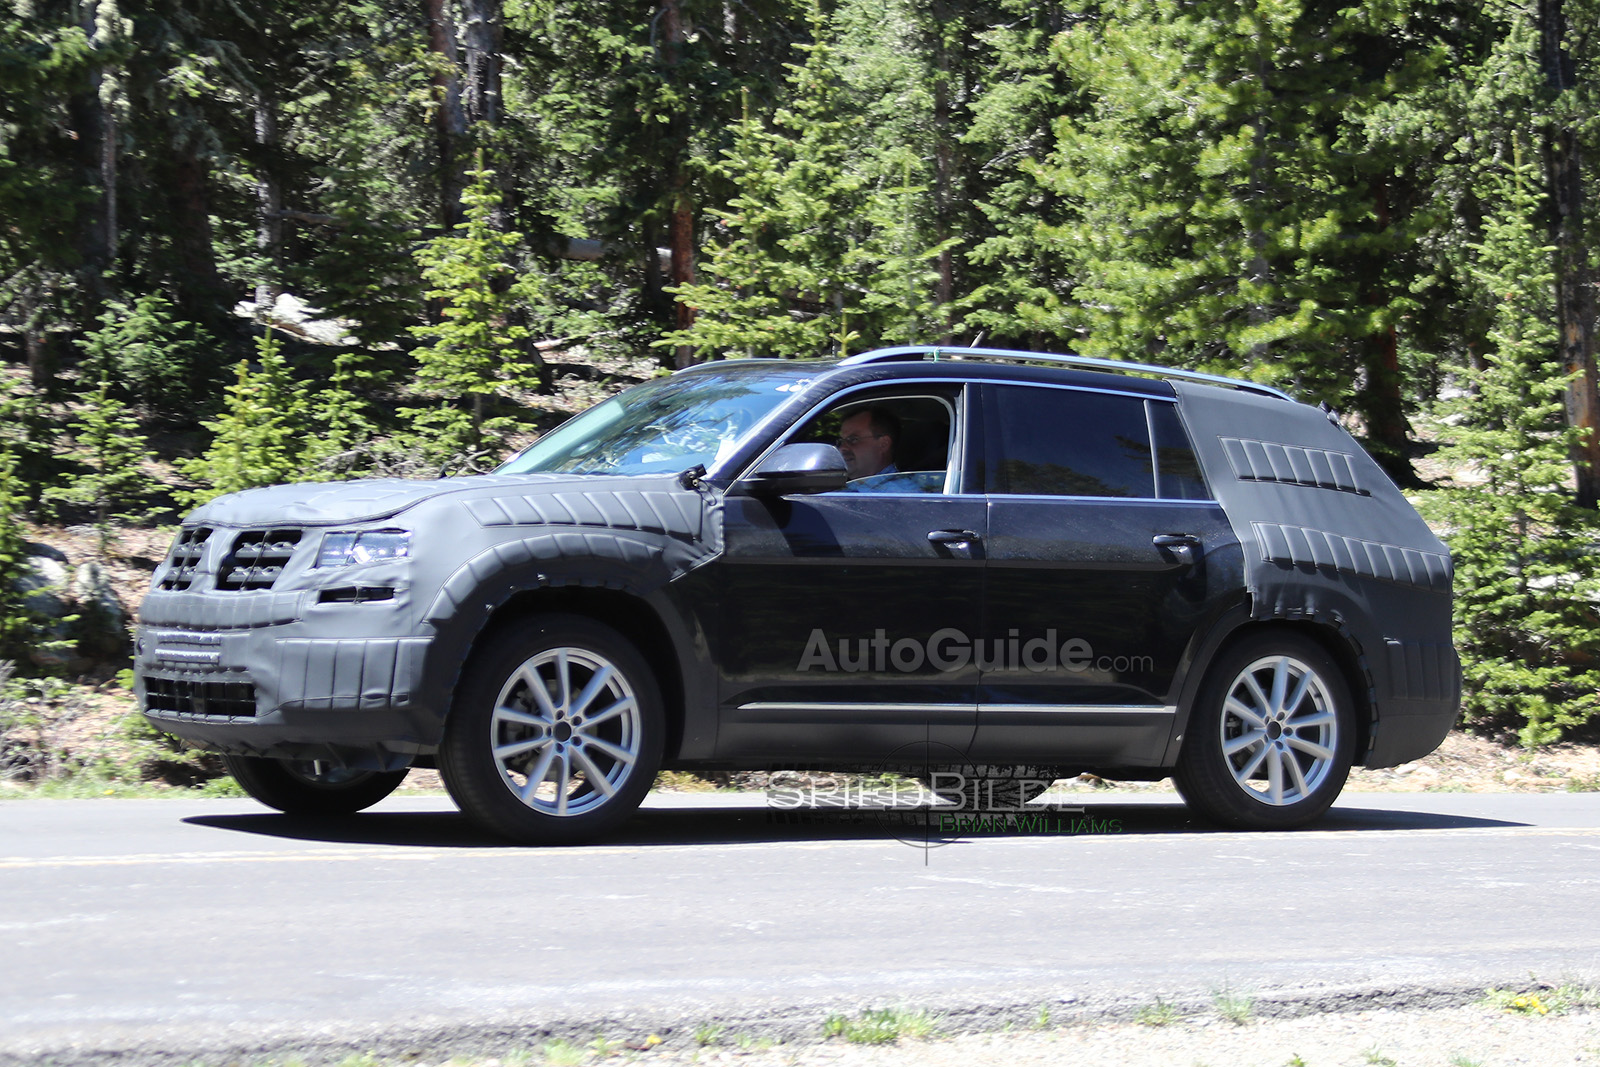 Vw S Seven Seat Suv Caught Testing In The Rockies Autoguide Com News